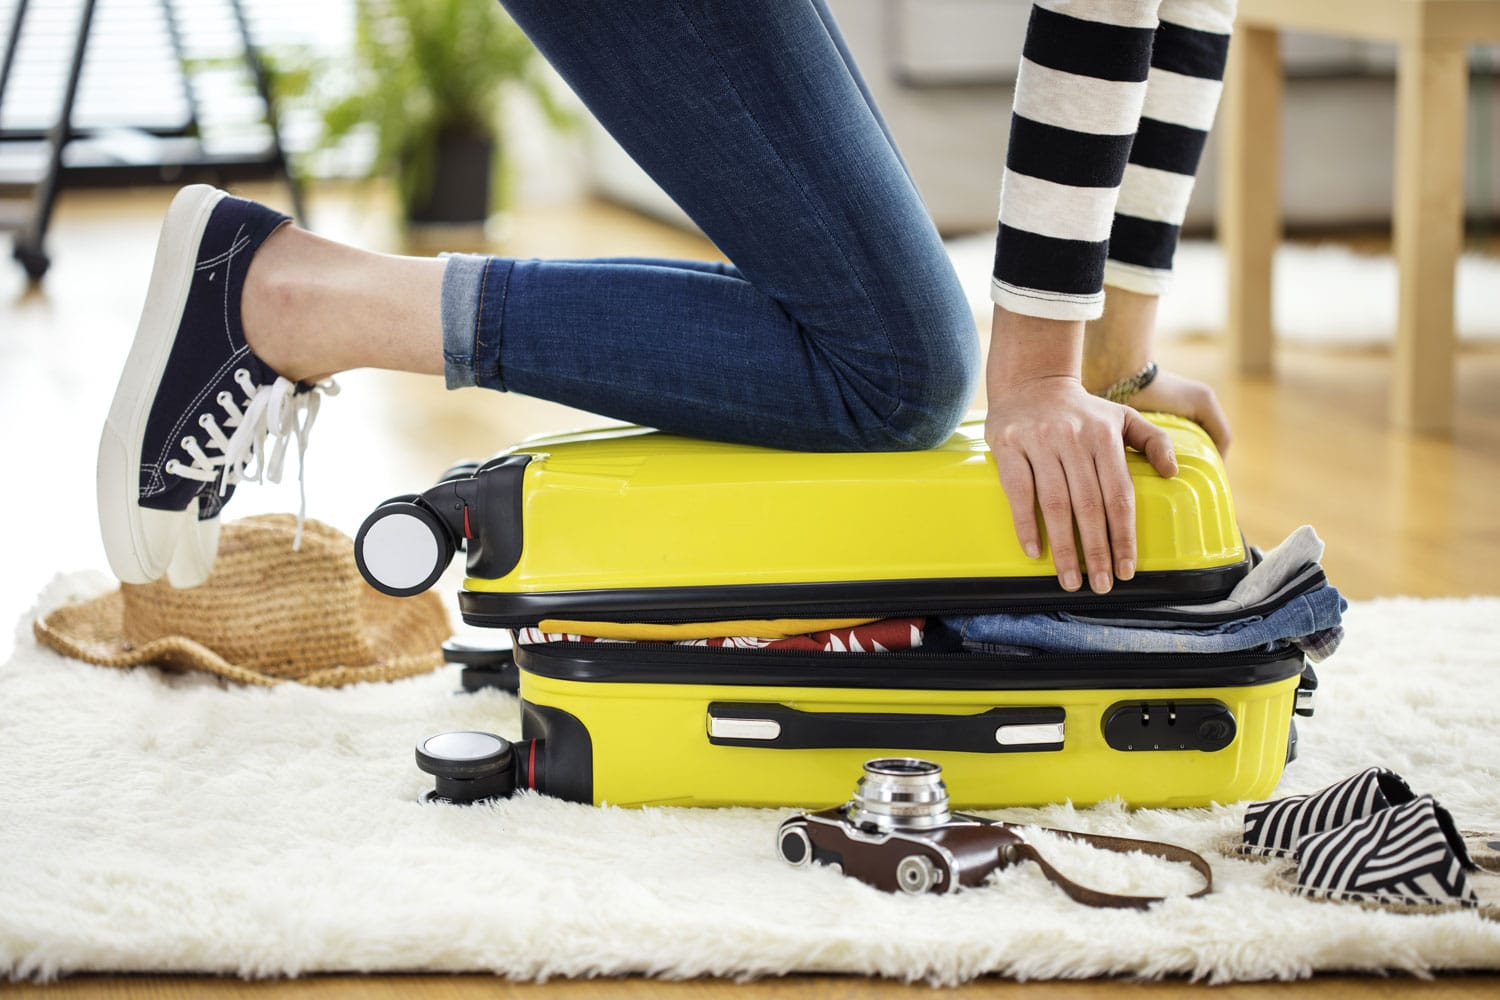 Women trying to close a suitcase